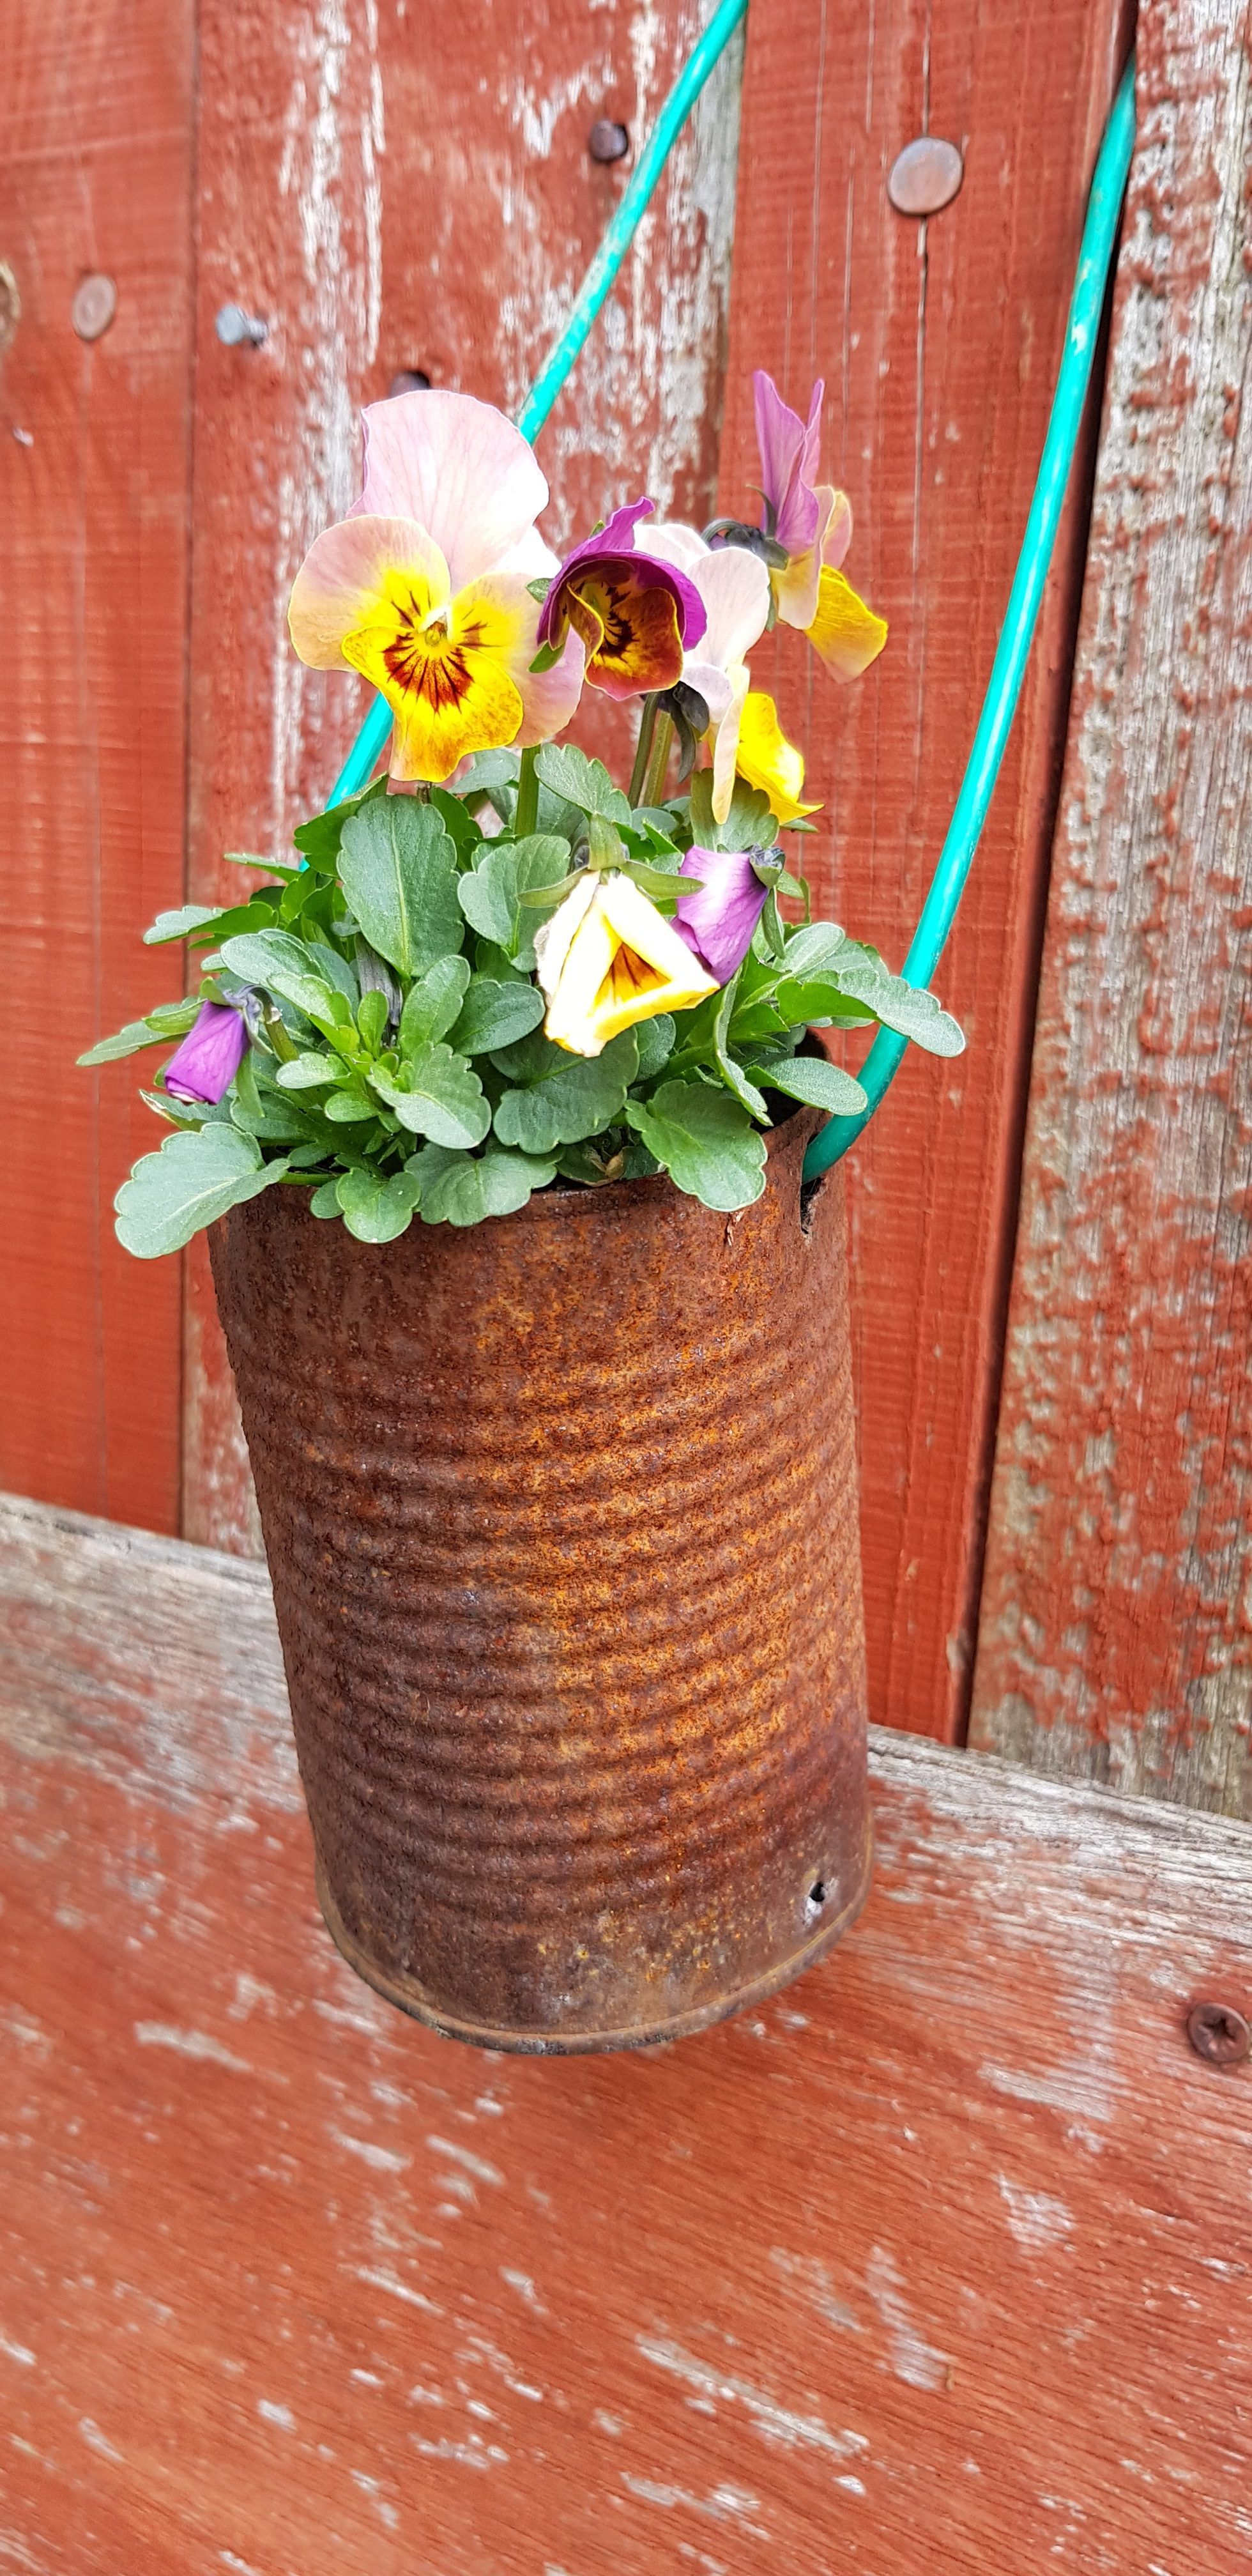 17 Quick And Easy Earth Day Activities For Kids | Garden ...